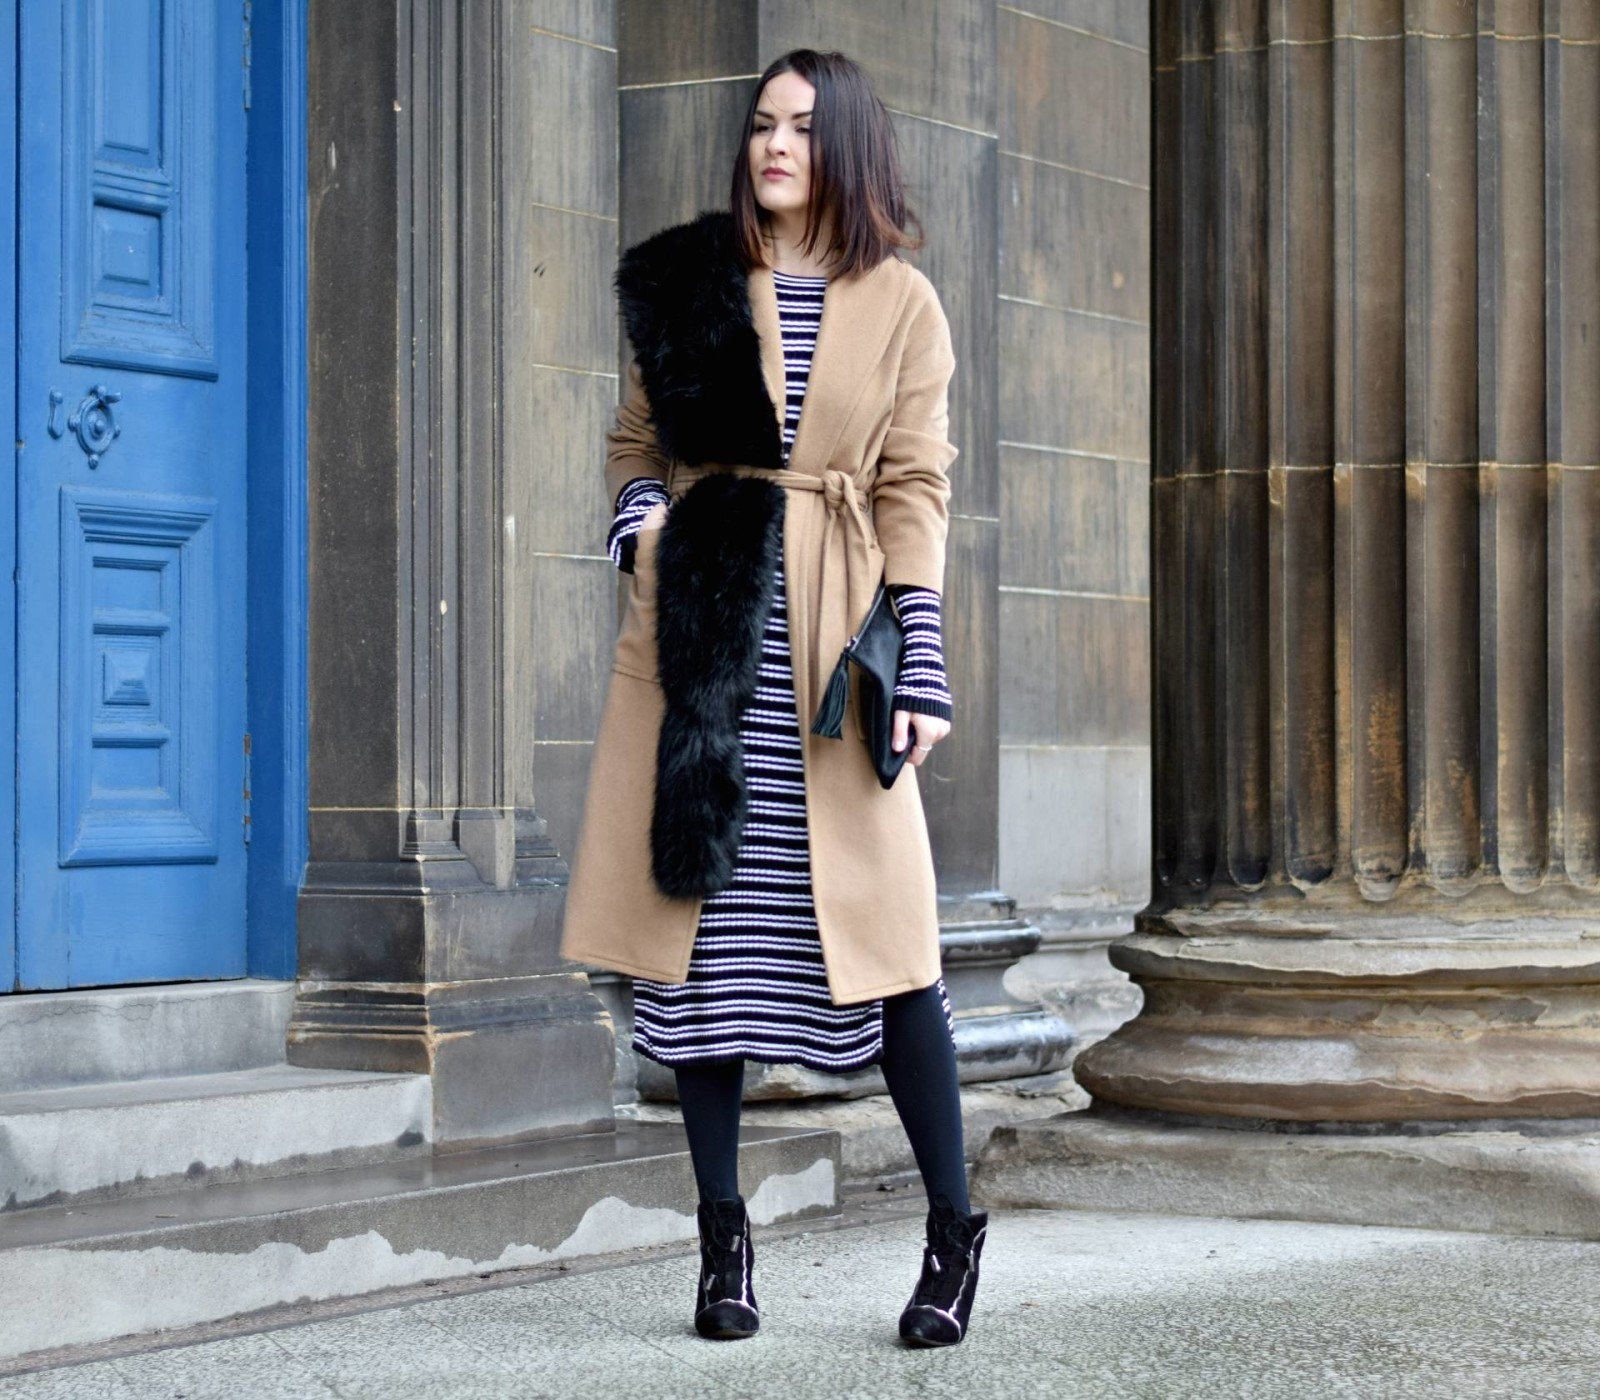 Striped H&M Dress and Camel Coat - LAFOTKA Fashion BLogger4